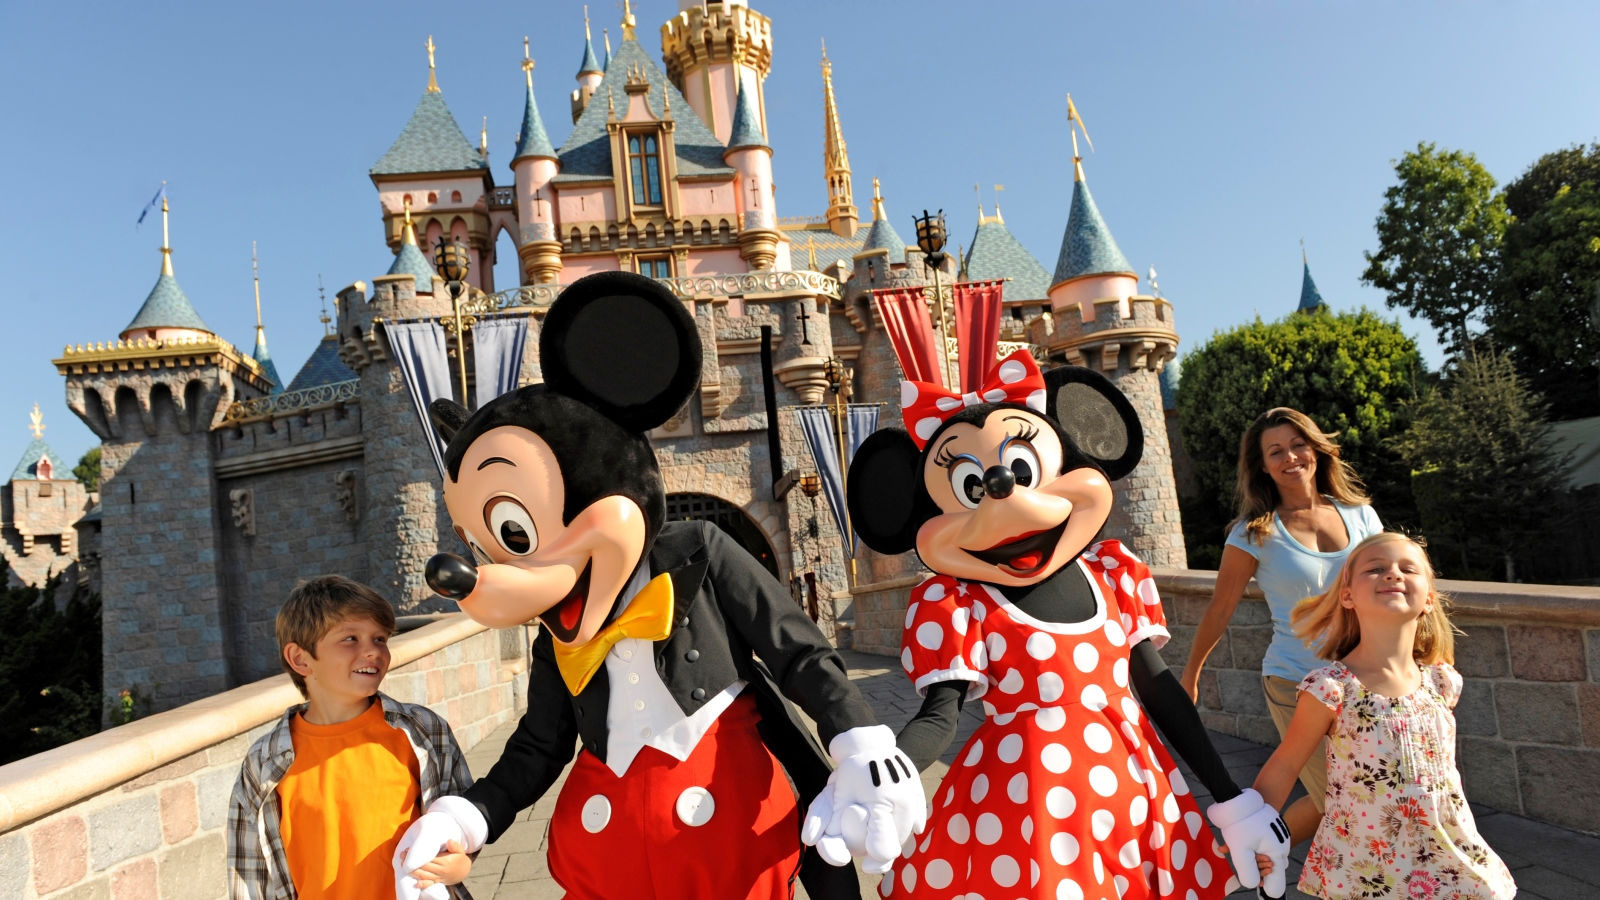 Things to Do in Anaheim - Disneyland Park